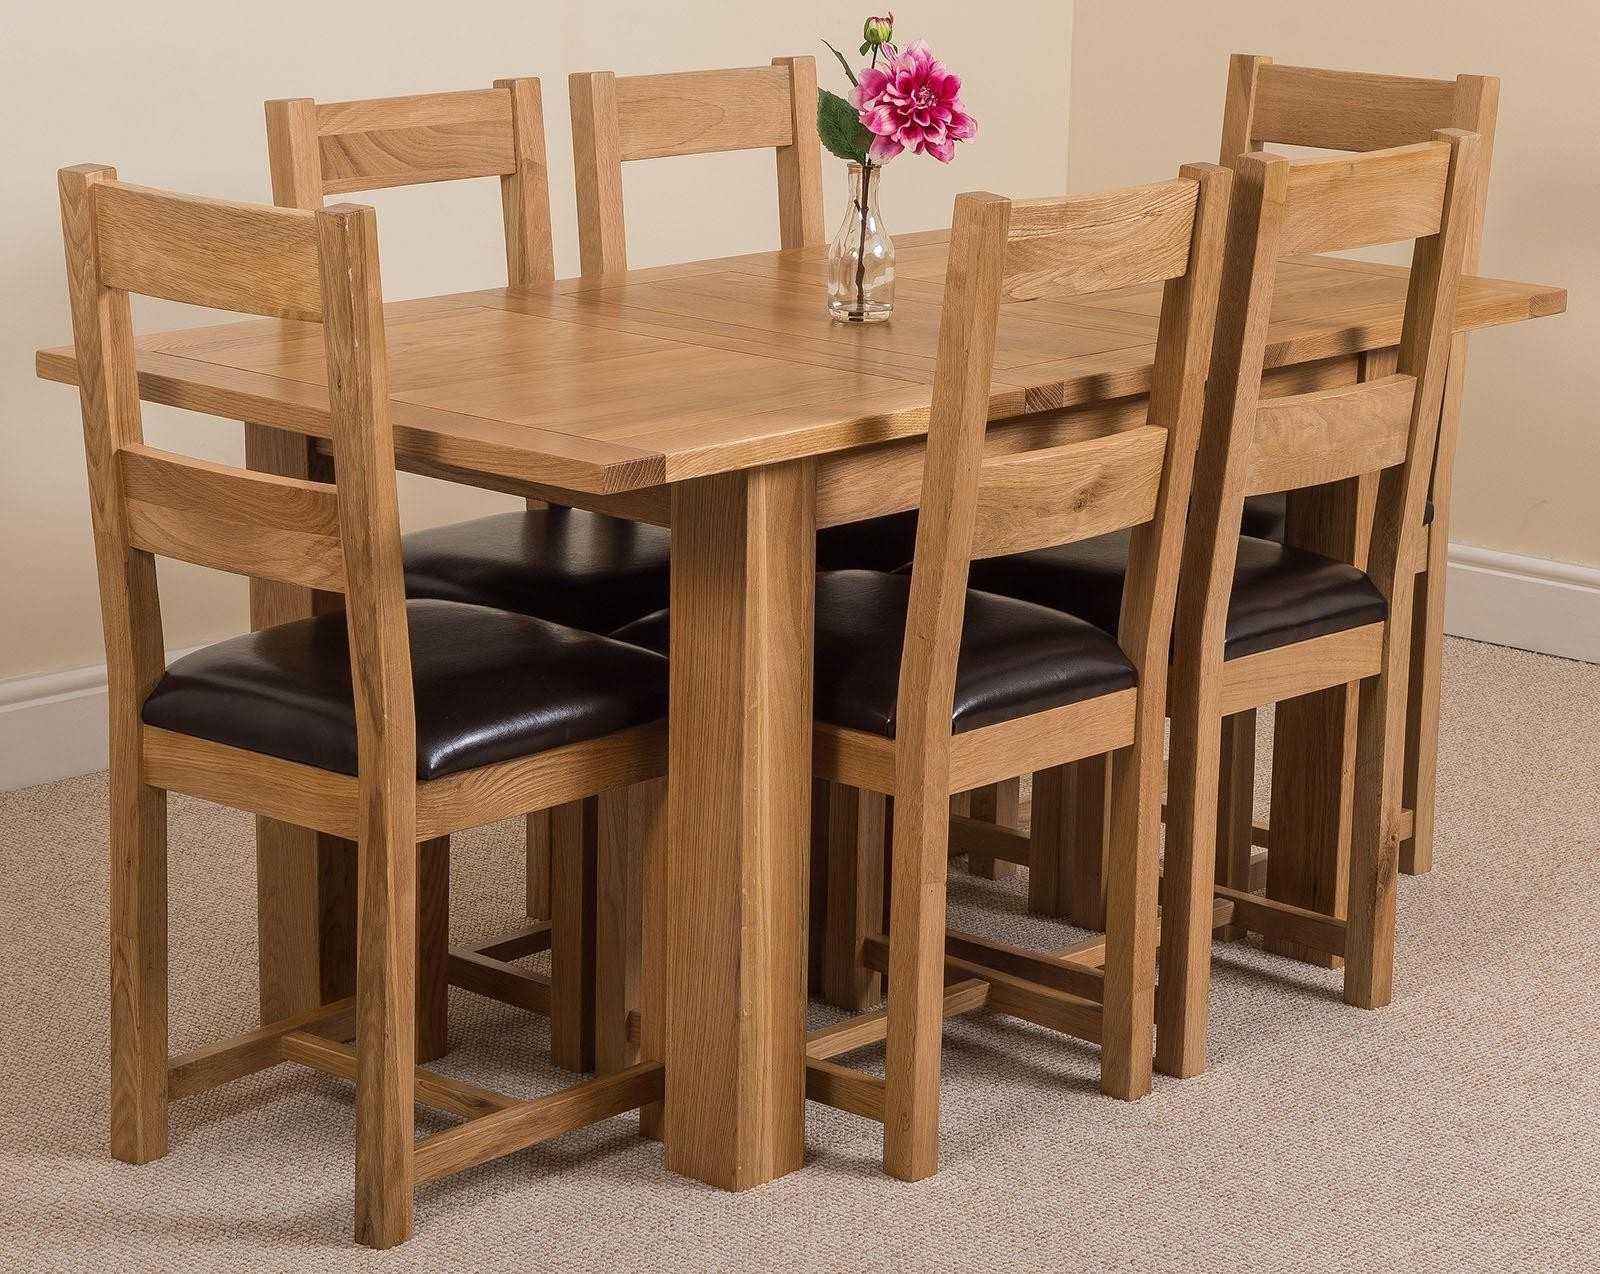 Oak Furniture King Intended For Extending Oak Dining Tables And Chairs (View 7 of 25)